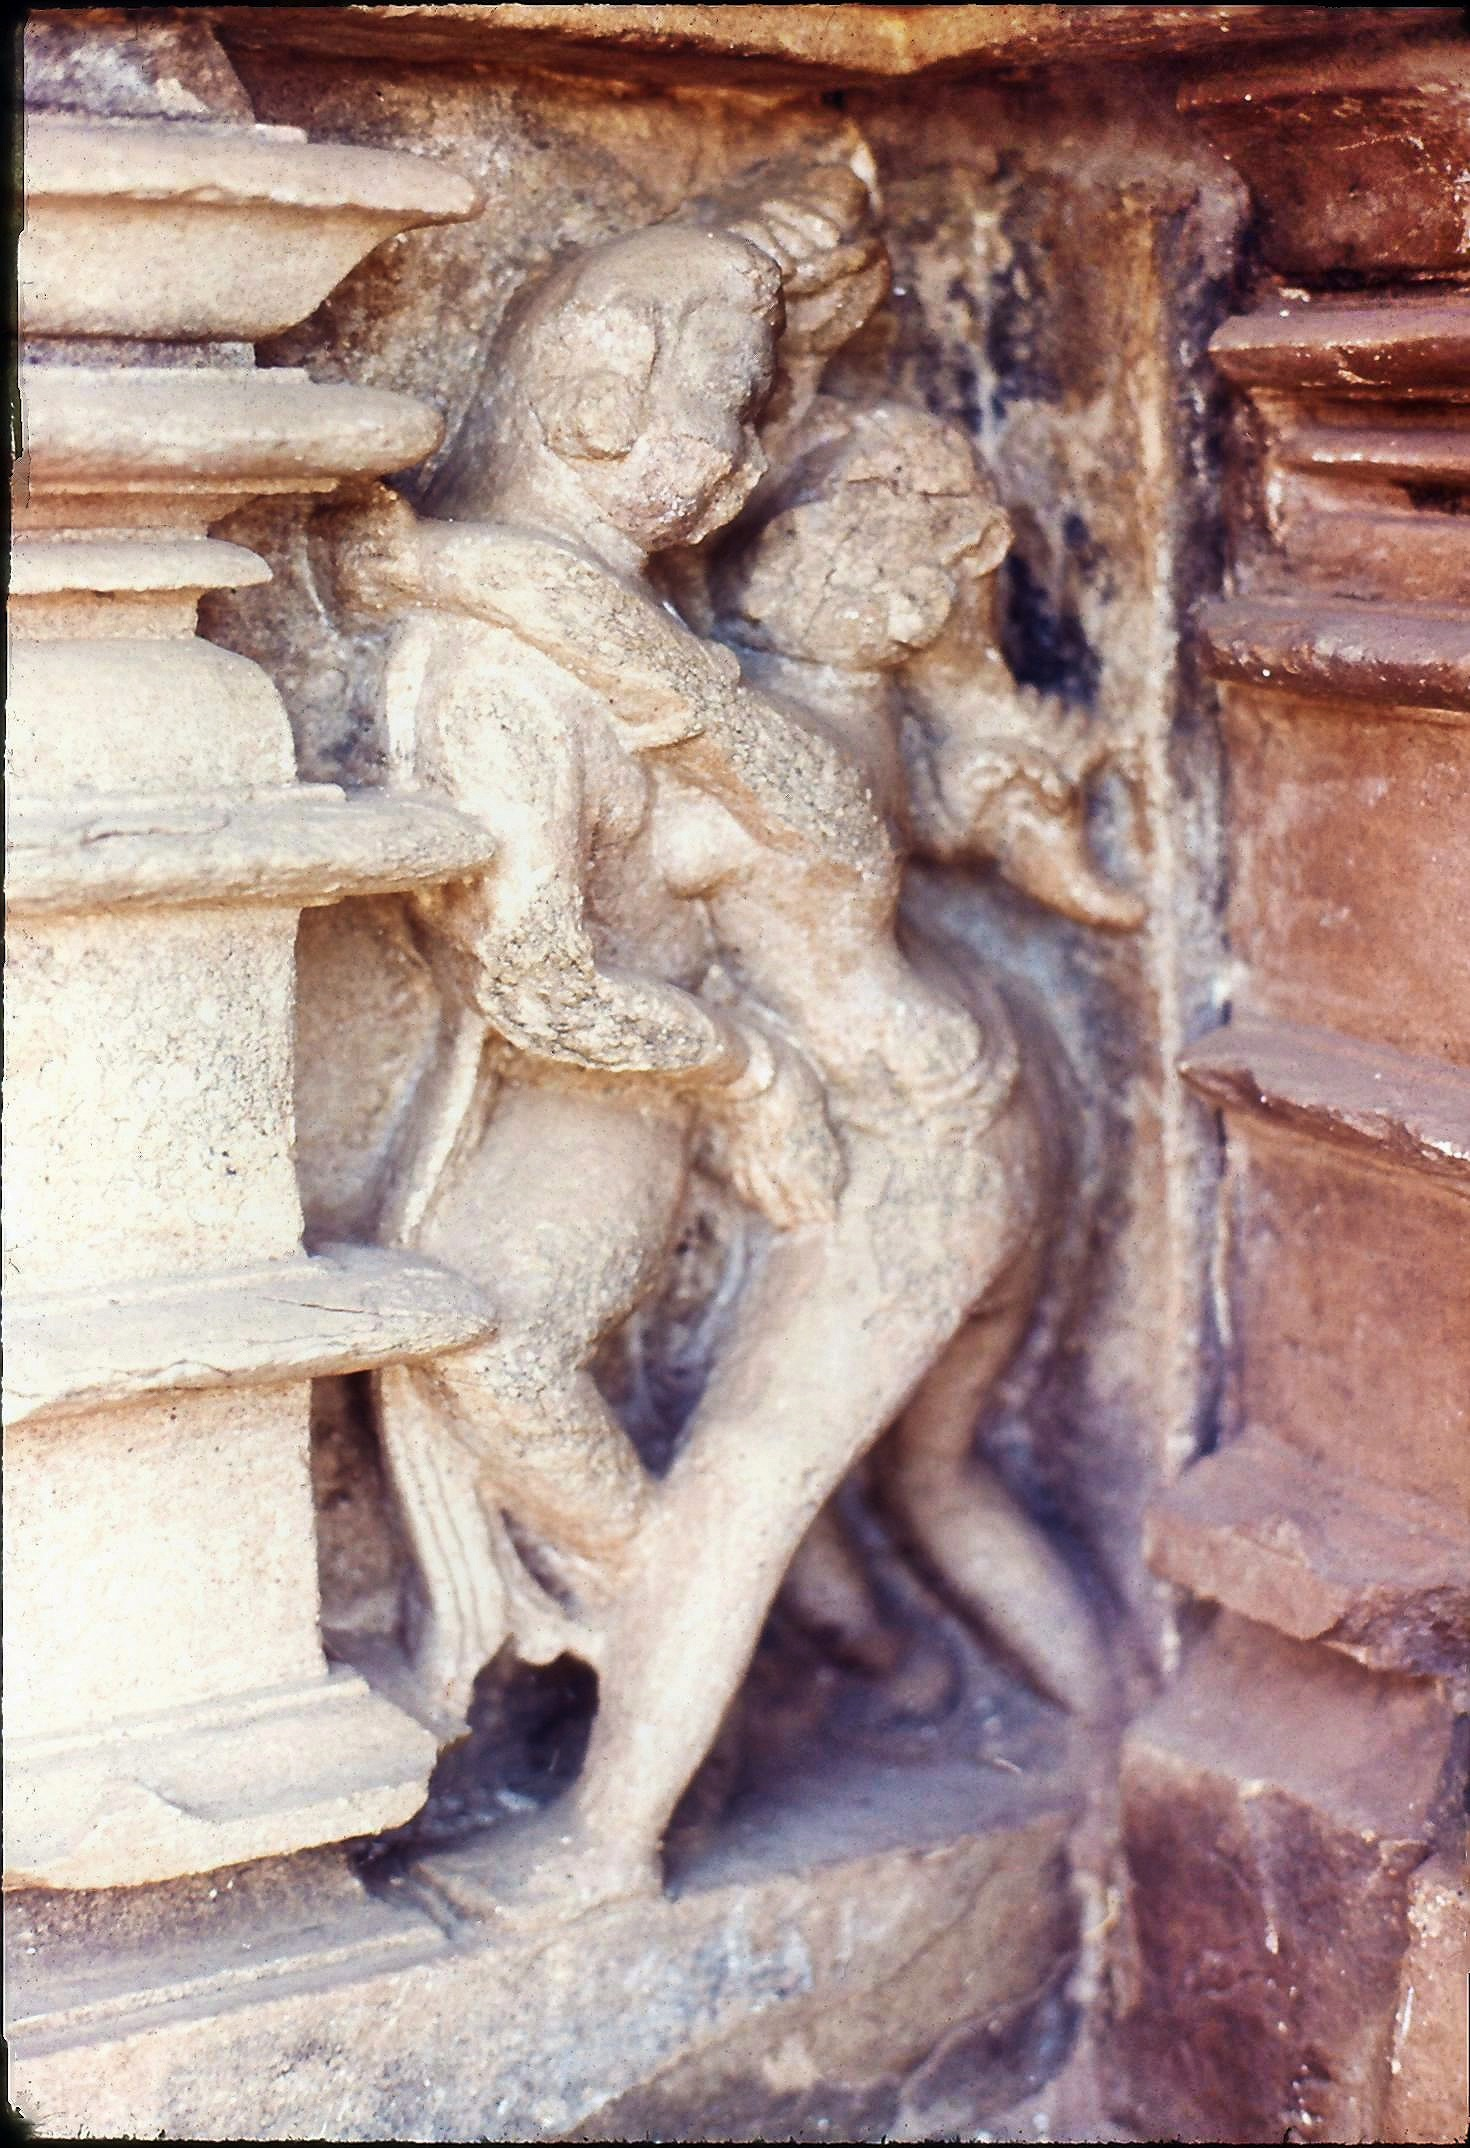 This should be 20-Khajuraho-7.jpeg.  Is it missing?